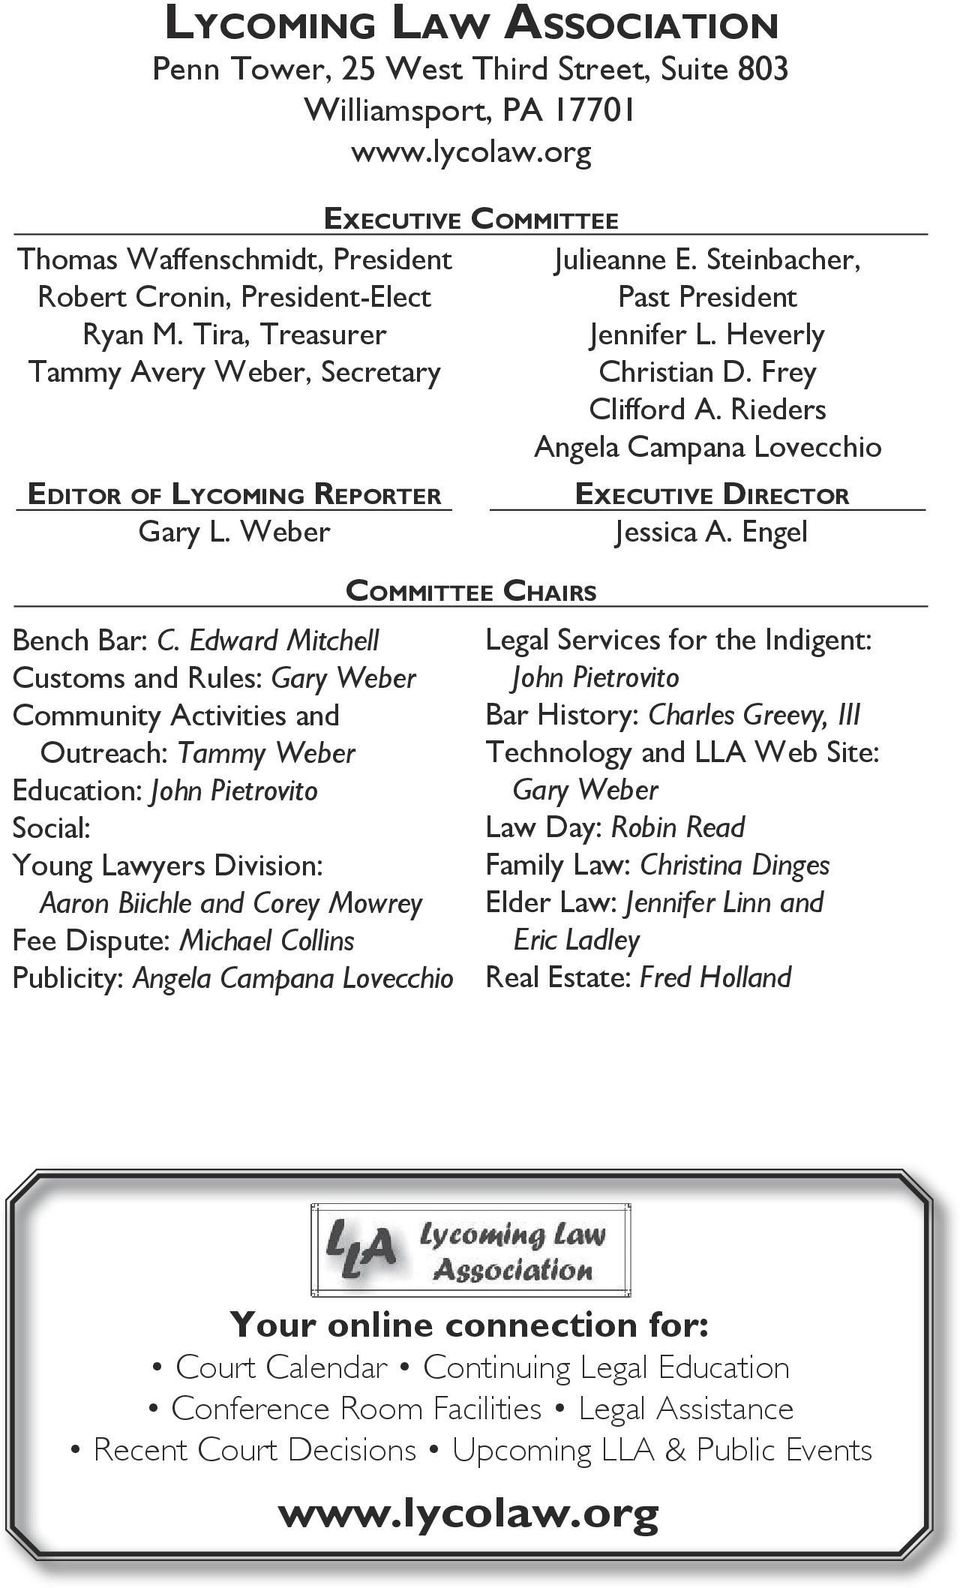 Edward Mitchell Customs and Rules: Gary Weber Community Activities and Outreach: Tammy Weber Education: John Pietrovito Social: Young Lawyers Division: Aaron Biichle and Corey Mowrey Fee Dispute: